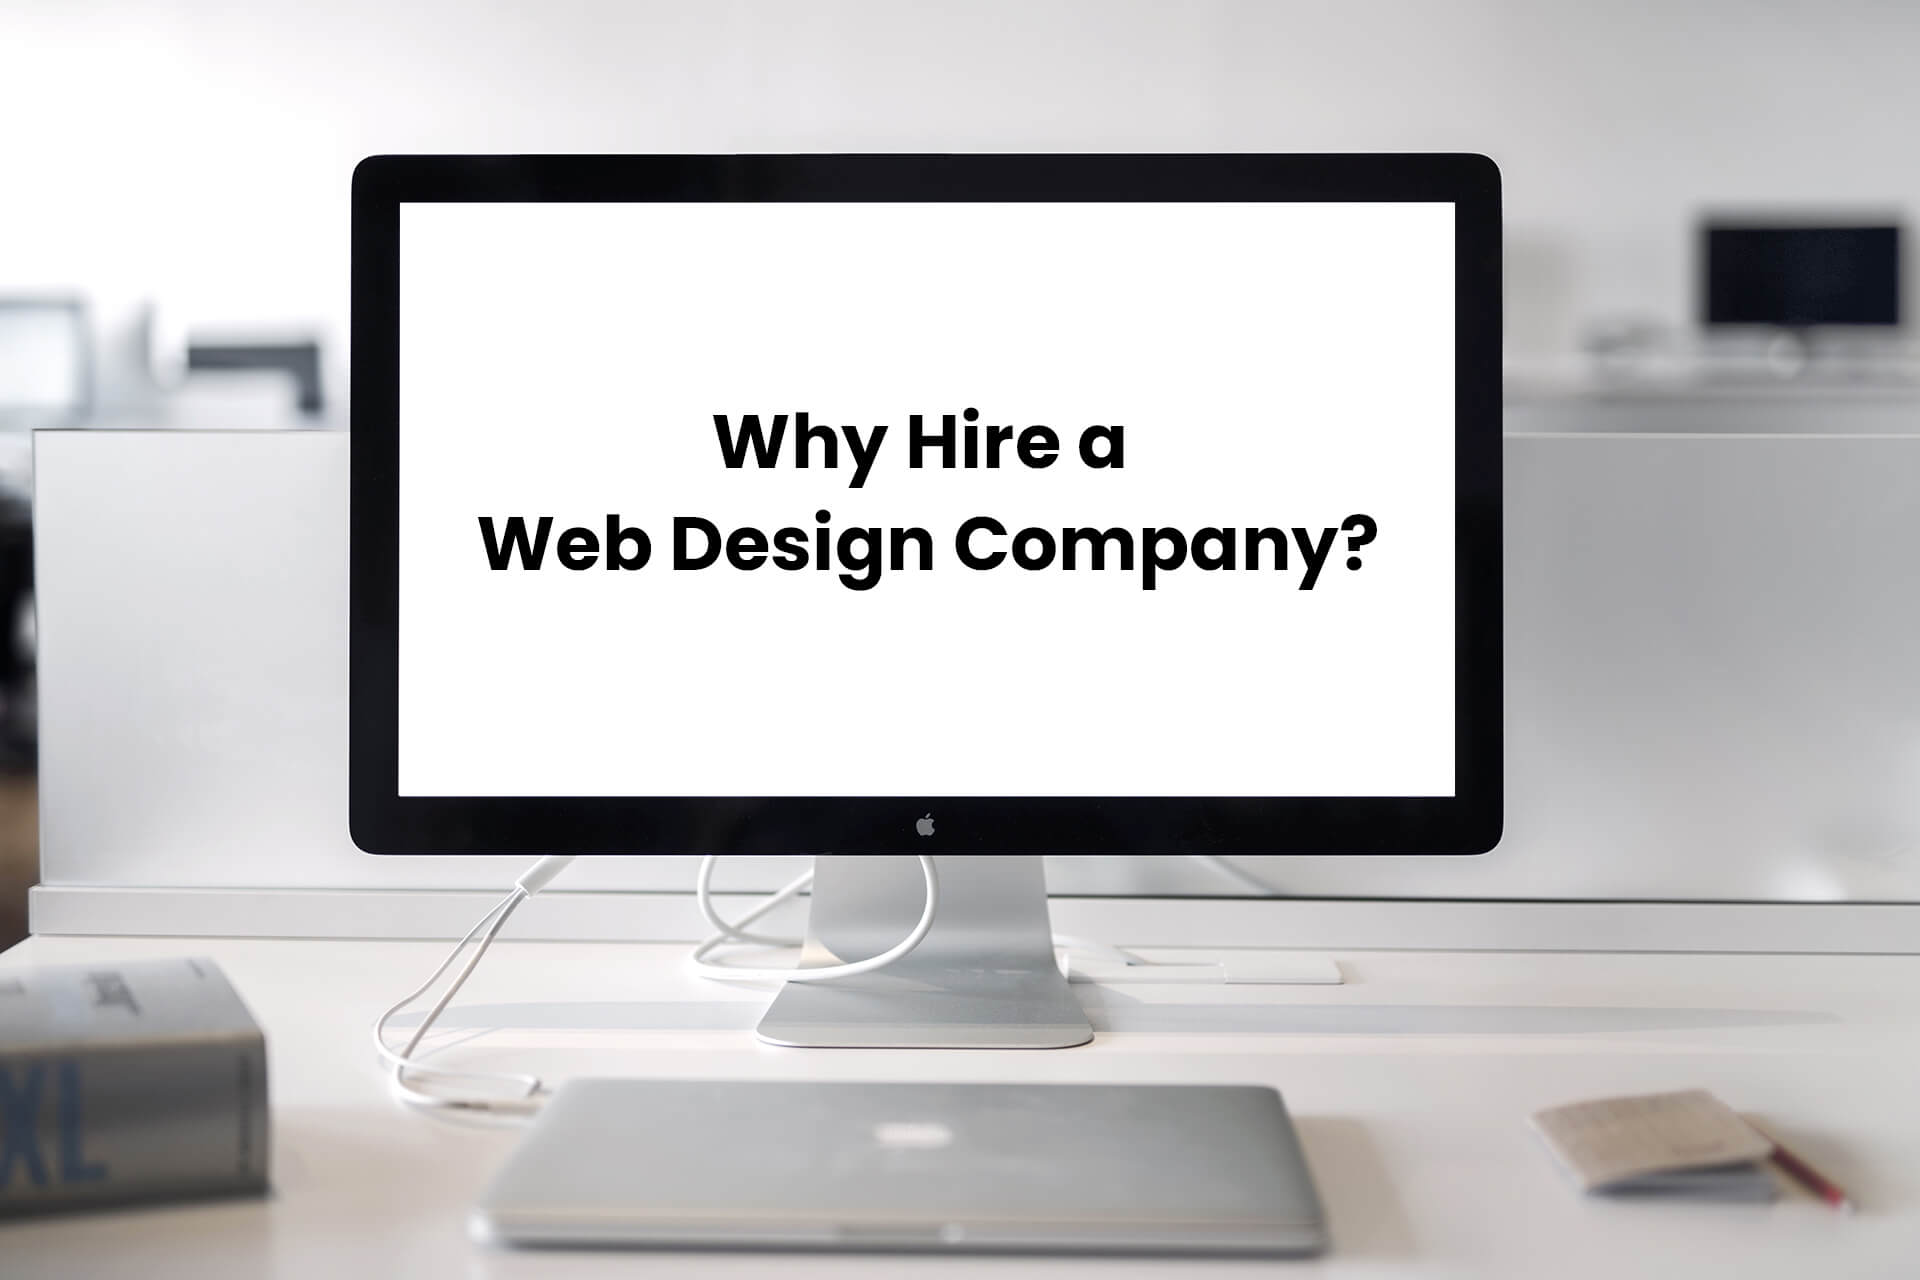 Why Hire a Web Design Company?